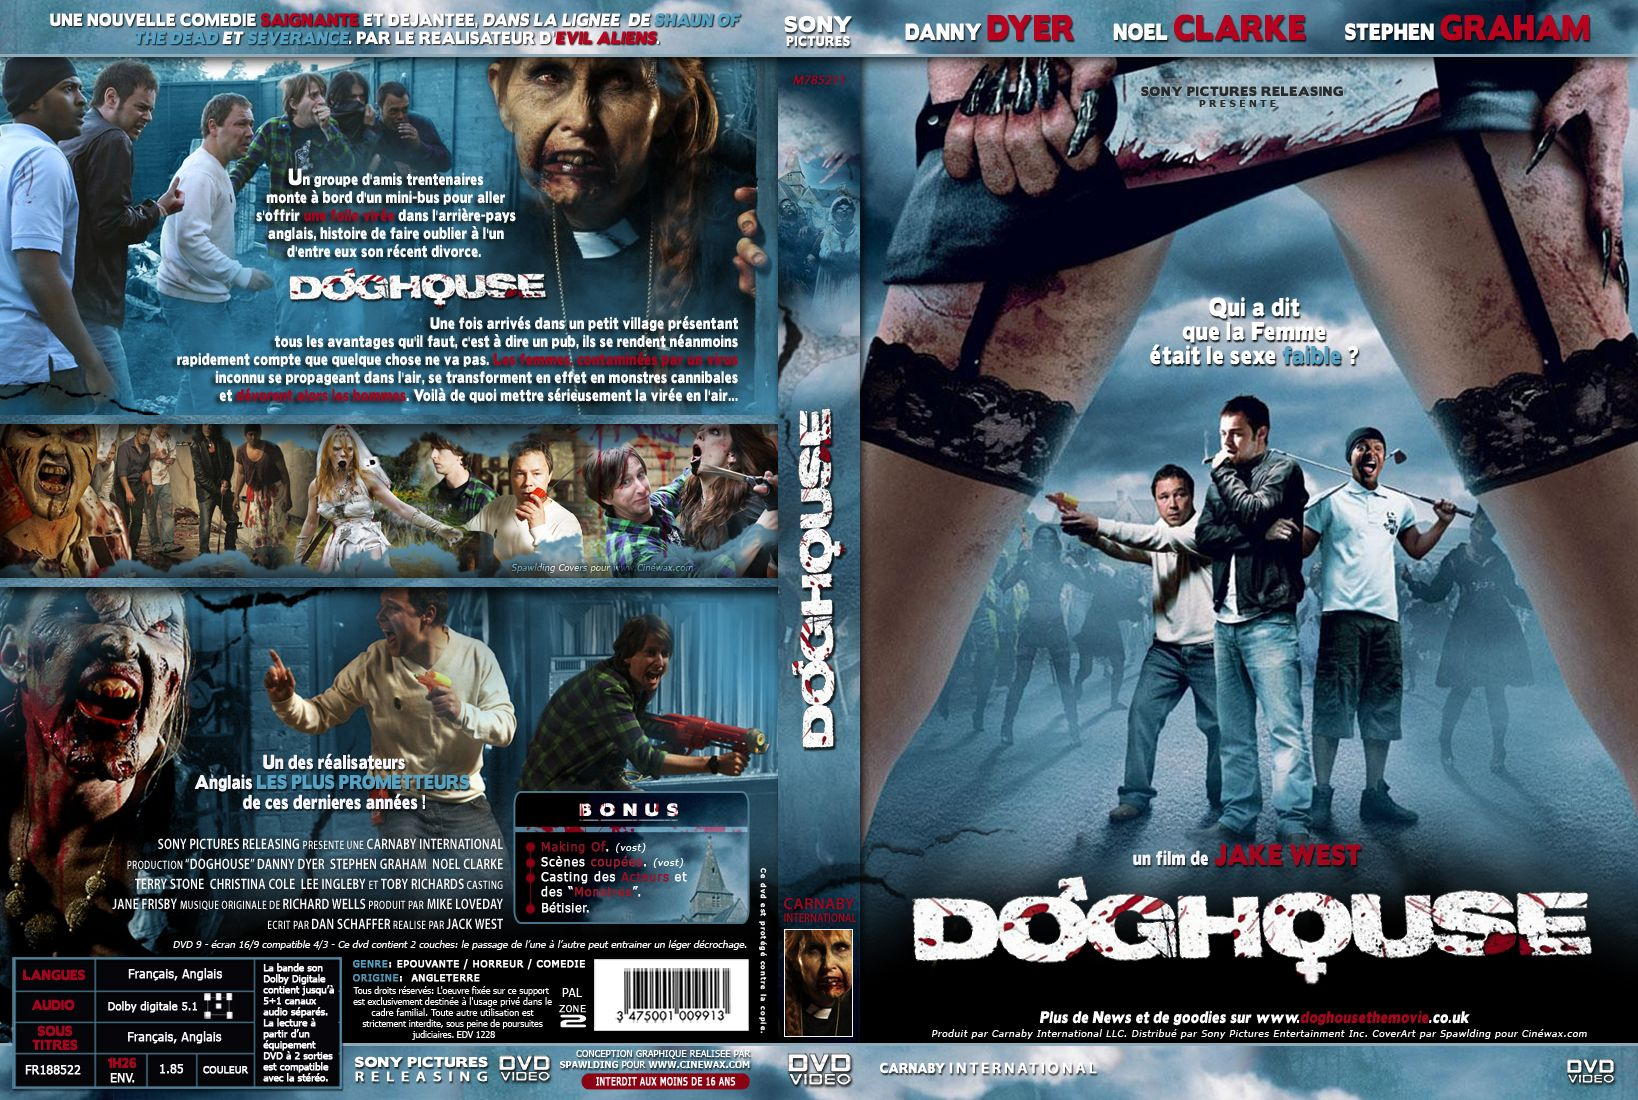 Doghouse 2009 Zombie Movies Film Cover